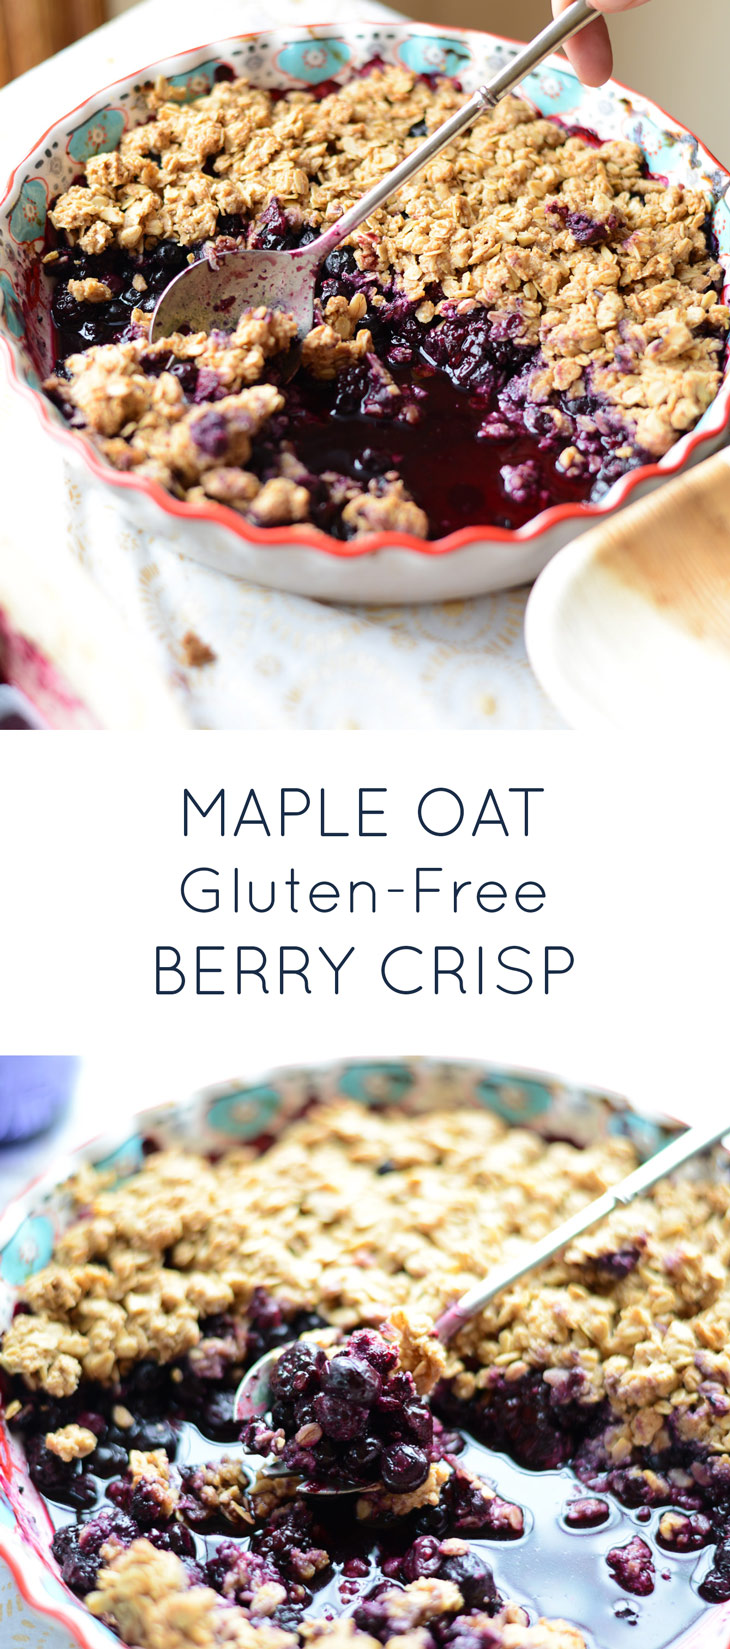 Healthy Maple Oat Mixed Berry Crisp. Naturally gluten-free and dairy-free and so yummy!